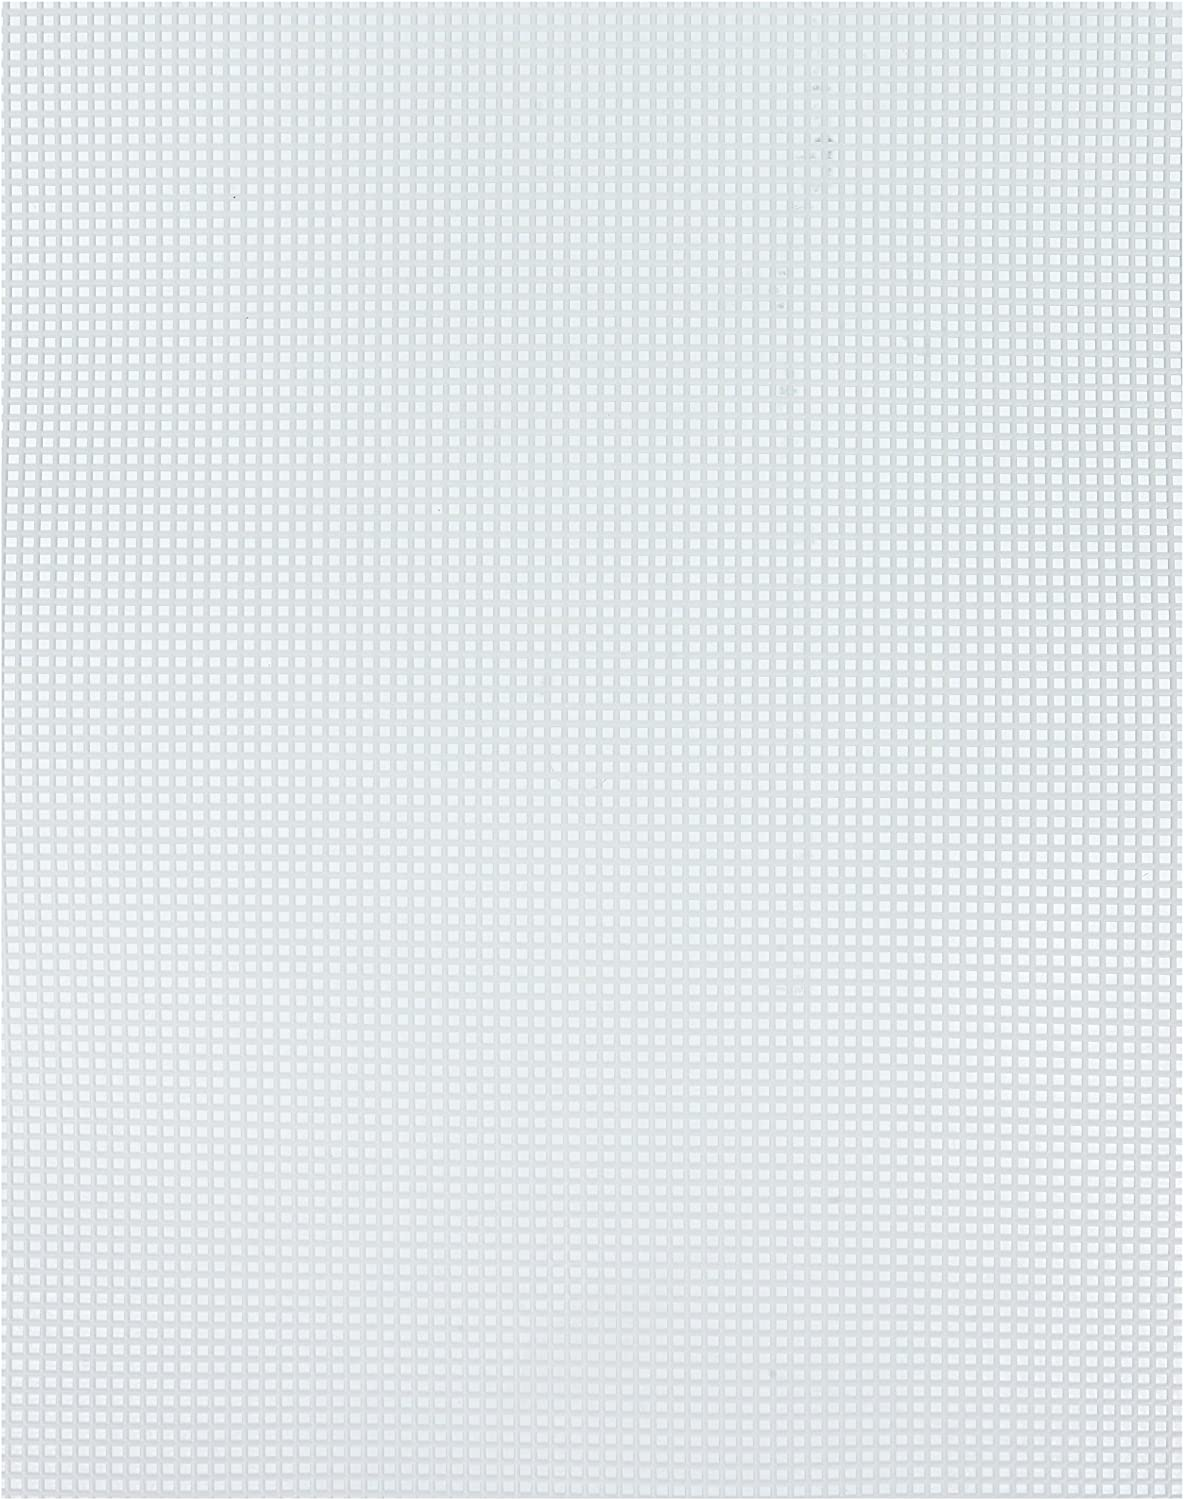 Darice 33418-1 Plastic Canvas Ultra Rigido Clear 26.67 x 34.29 x 0.3 cm